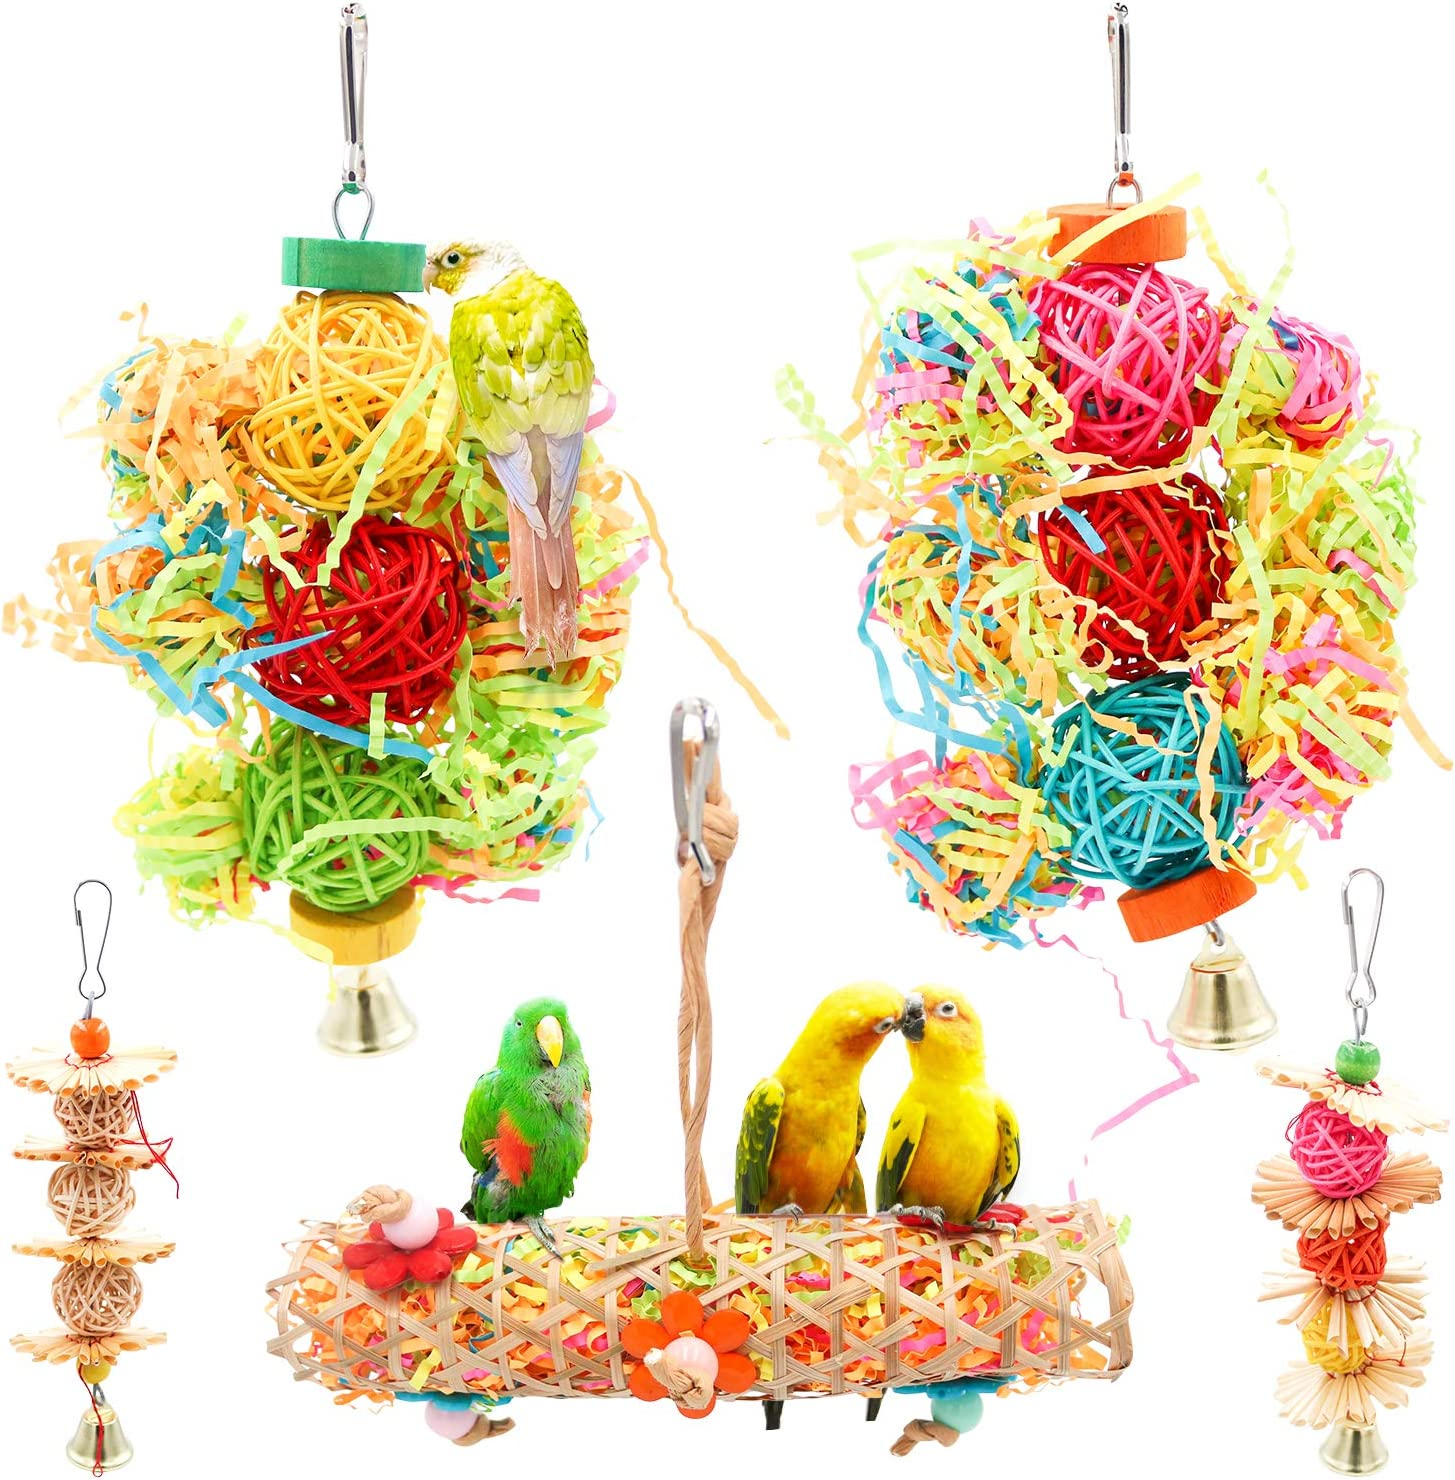 Bac-kitchen Parrot cage Toys Bird Swing Toys Parrot Shredder Toy Shred Foraging Hanging Cage Toy Wood Beads Bells Wooden Hammock Hanging Toys for Budgie Lovebirds Conures Parakeet